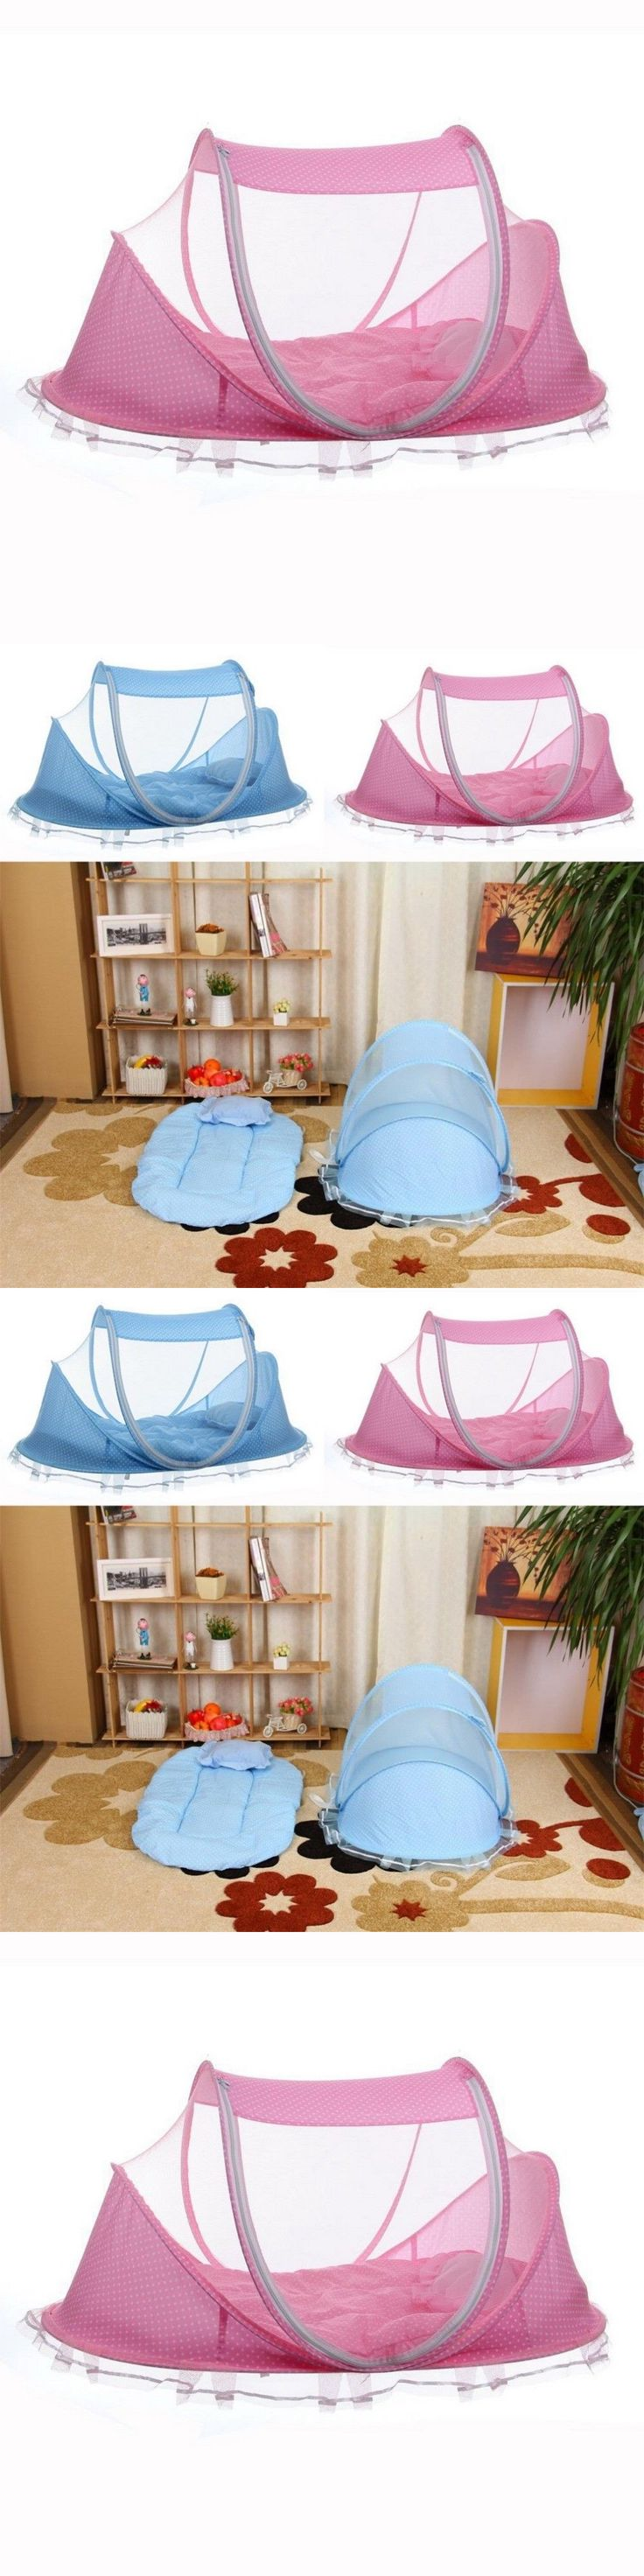 Canopies and Netting 180905: 4Pc Baby Crib Portable Comfortable Babies Pad Mosquito Net Kids Infant Bed Pink -> BUY IT NOW ONLY: $44.21 on eBay!